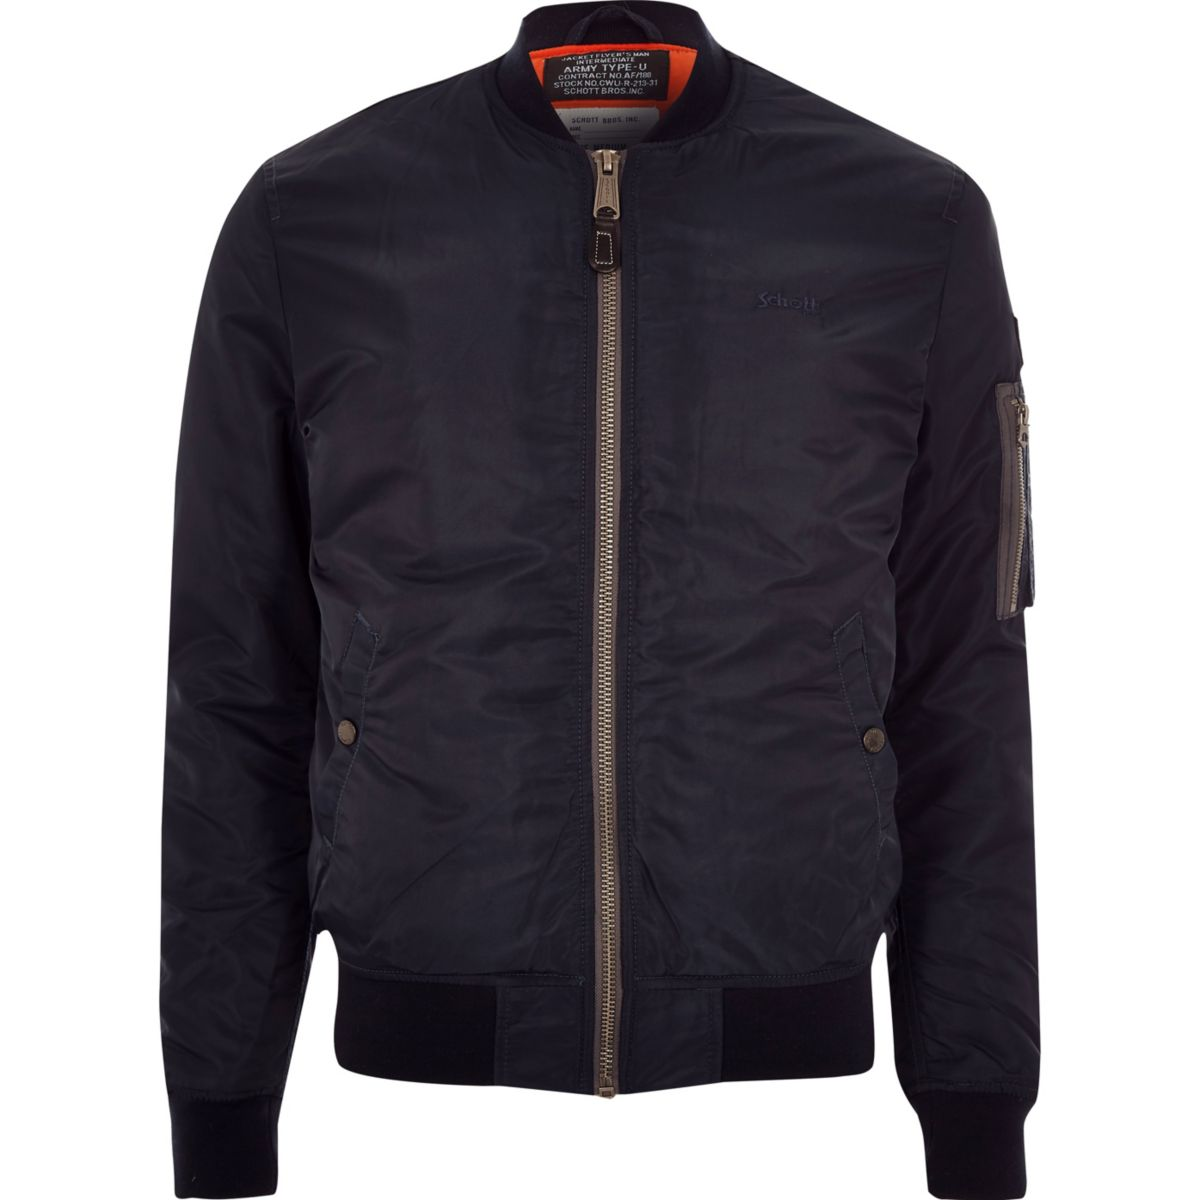 Schott dark blue bomber jacket